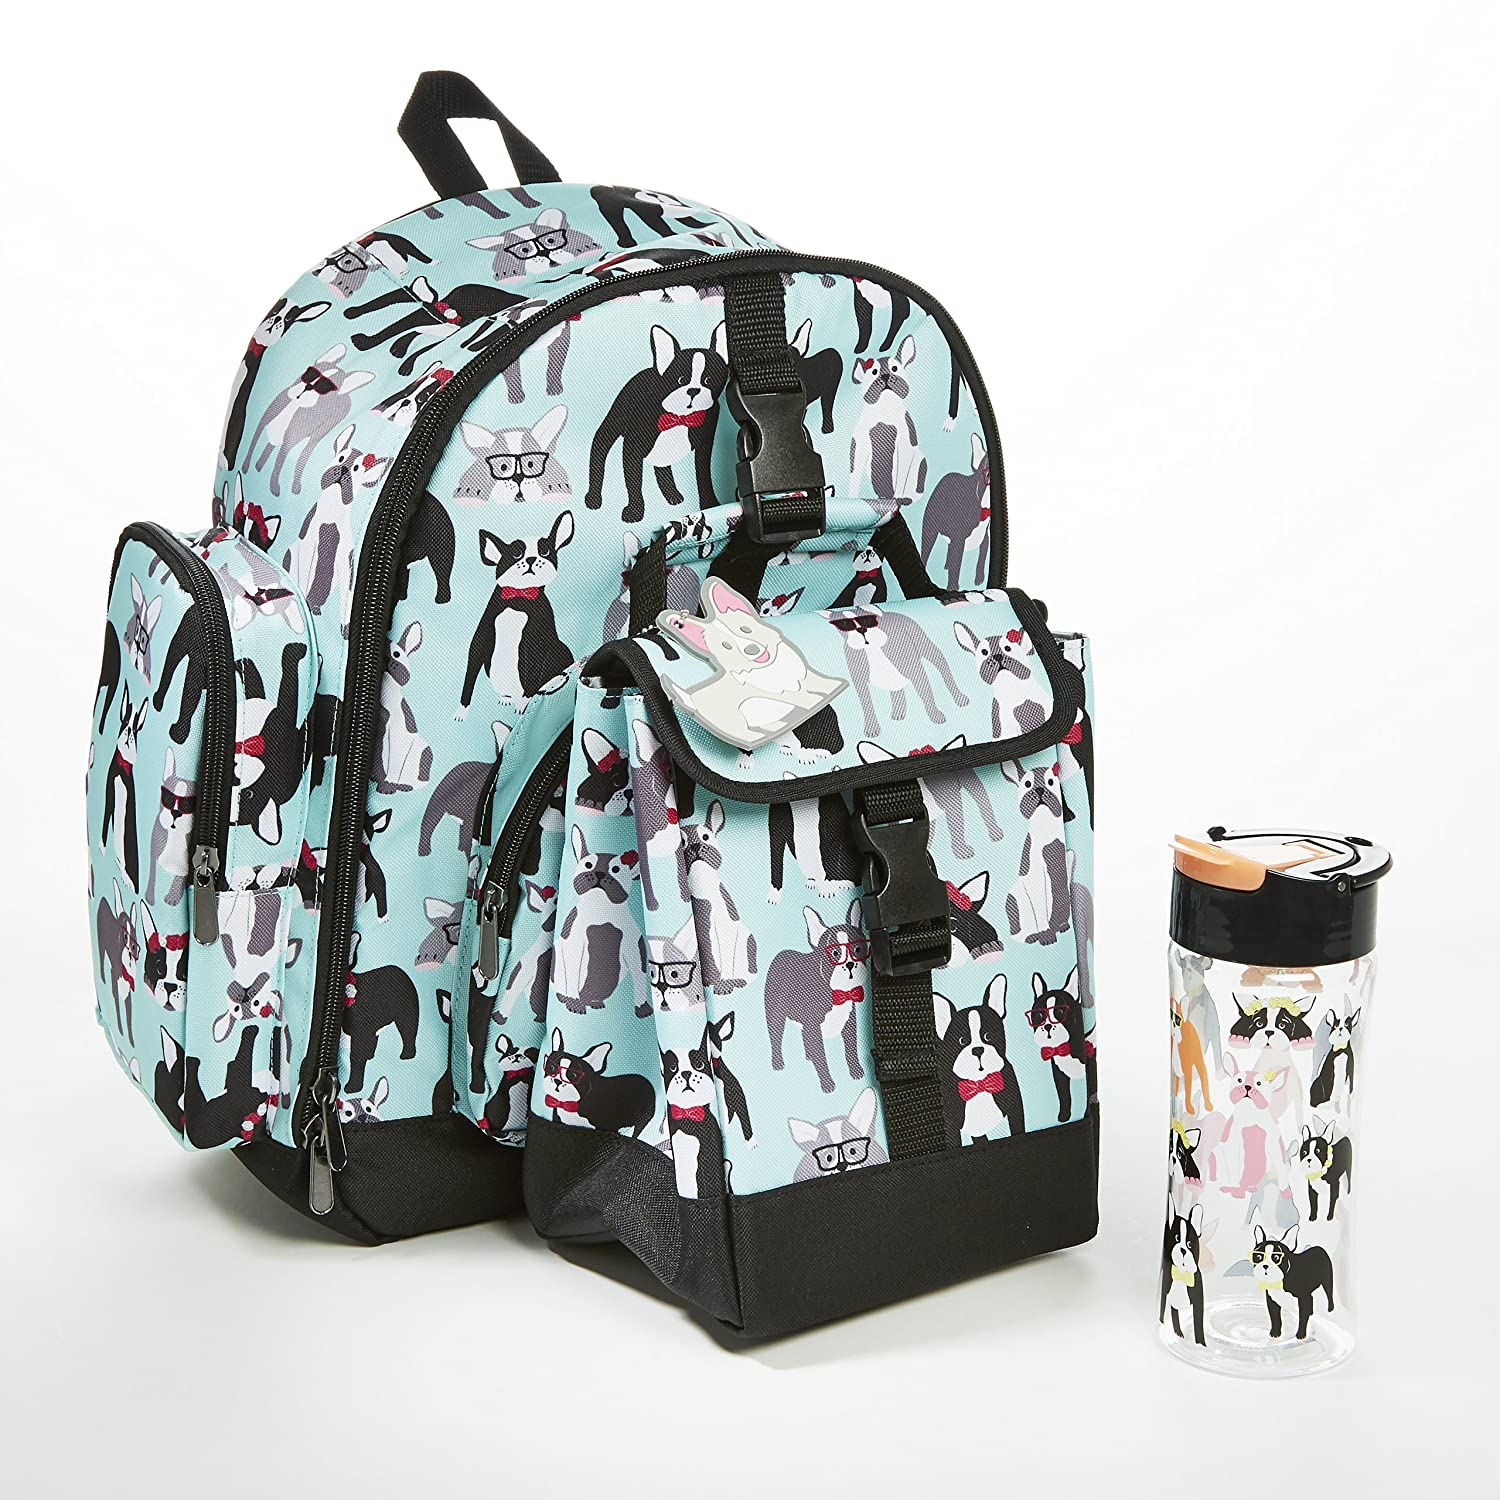 86c79cf192a9 Amazon.com  Fit   Fresh Lola Backpack   Ariana Lunch Bag Kit for Kids